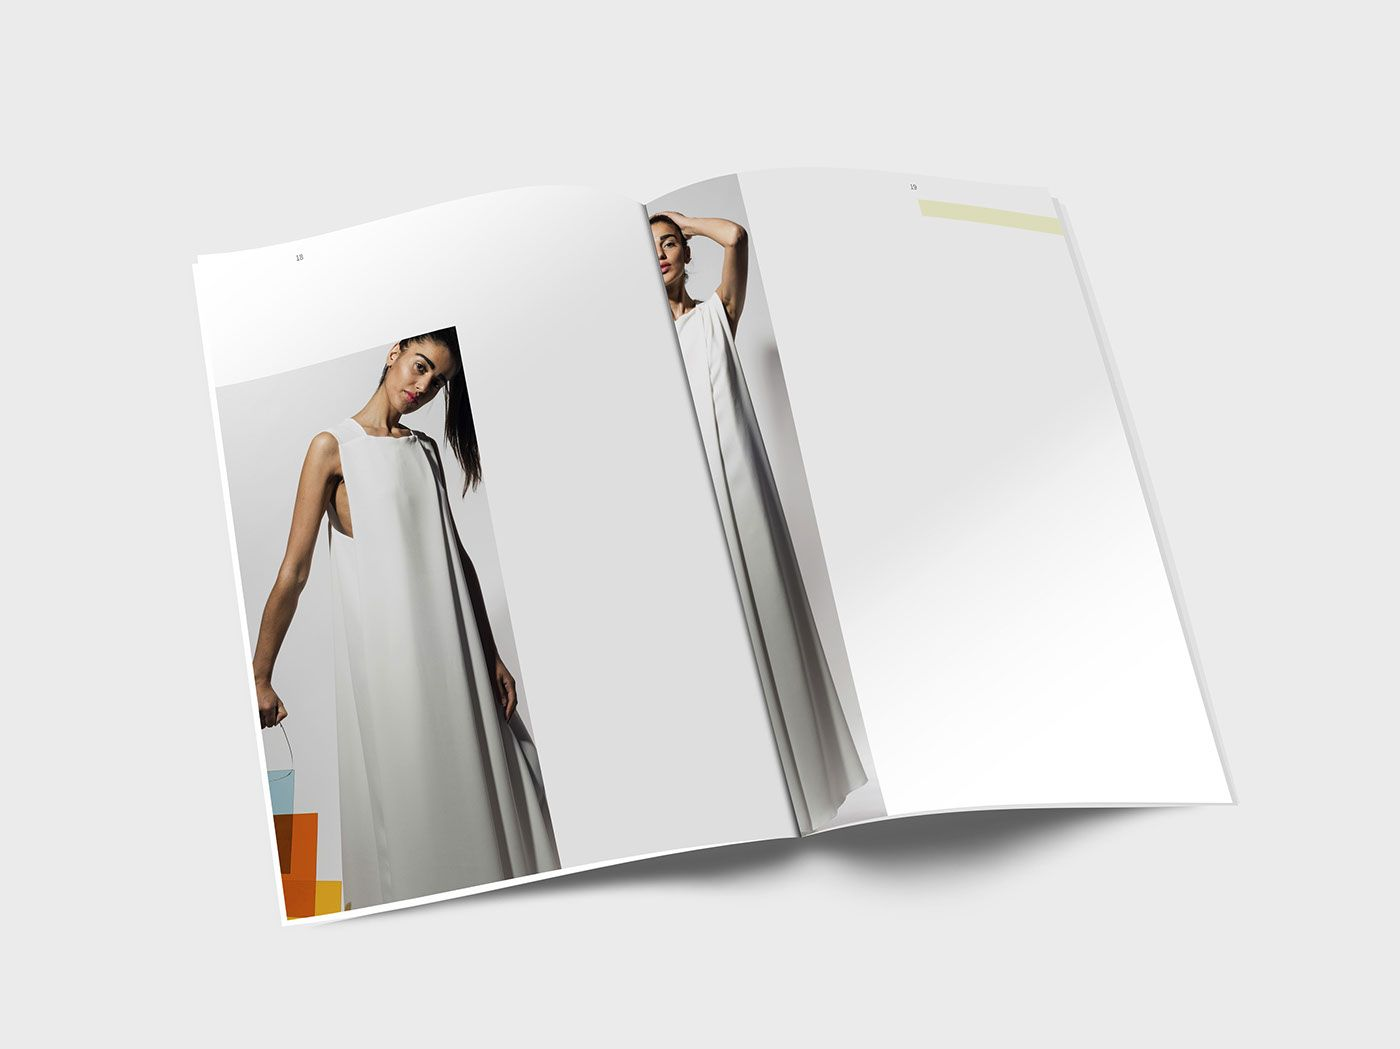 Lookbook 3 Zimmer Küche Bad on Behance   look book layout research ...